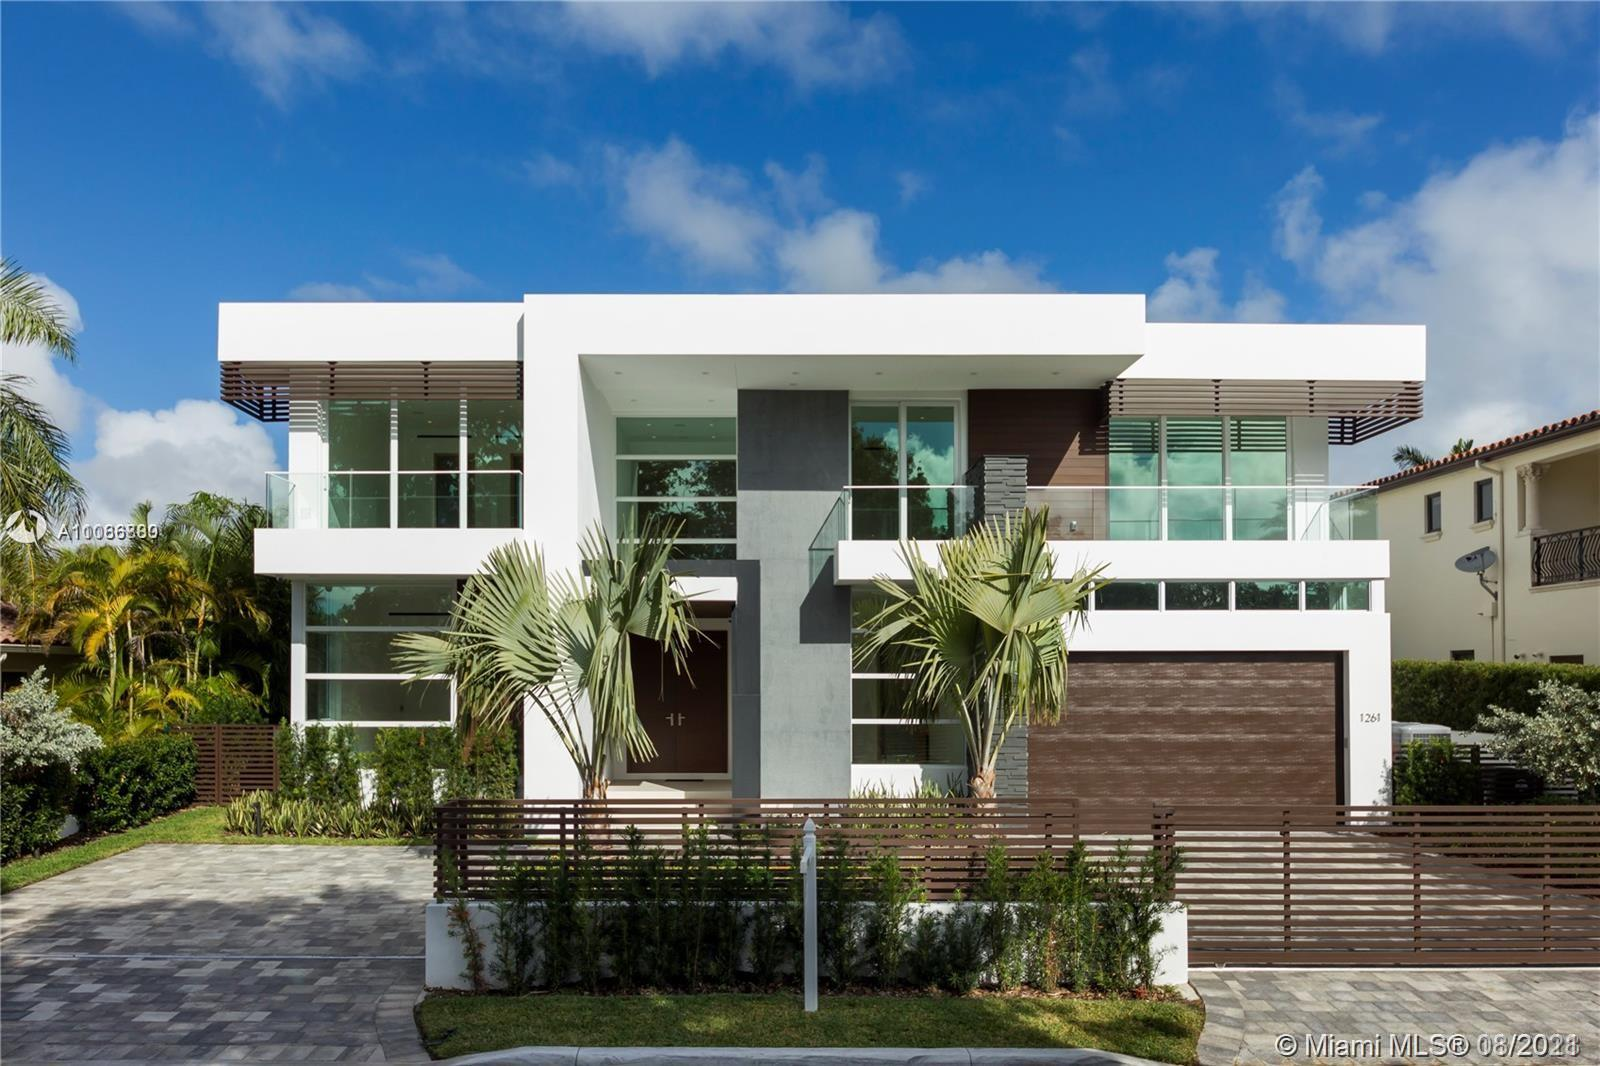 Rarely available 8 bedroom new construction ! Bay Harbour Gem ! This stunning 6200 SF Tropical Modern offers a combination of sleek Architecture & Bespoke finishes that will amaze the most discerning clientele. A thoughtfully Designed open layout perfect for lavish entertainment or family enjoyment, this fully integrated smart home features high ceilings, Crestron lighting, full home automation w/ security cameras, Snaidero Kitchen & Vanities, Electronic Window Treatments, Spacious Walk-in Closets w/ Custom Cabinetry, floating staircase etc... A tropical oasis steps from Bay Harbour shopping, top school and temples. Summer kitchen w/ grill, zero edge swimming pool w/ spa & covered loggia. Less than 900$/sqft for a fully customized new masterpiece ! Will not last !!